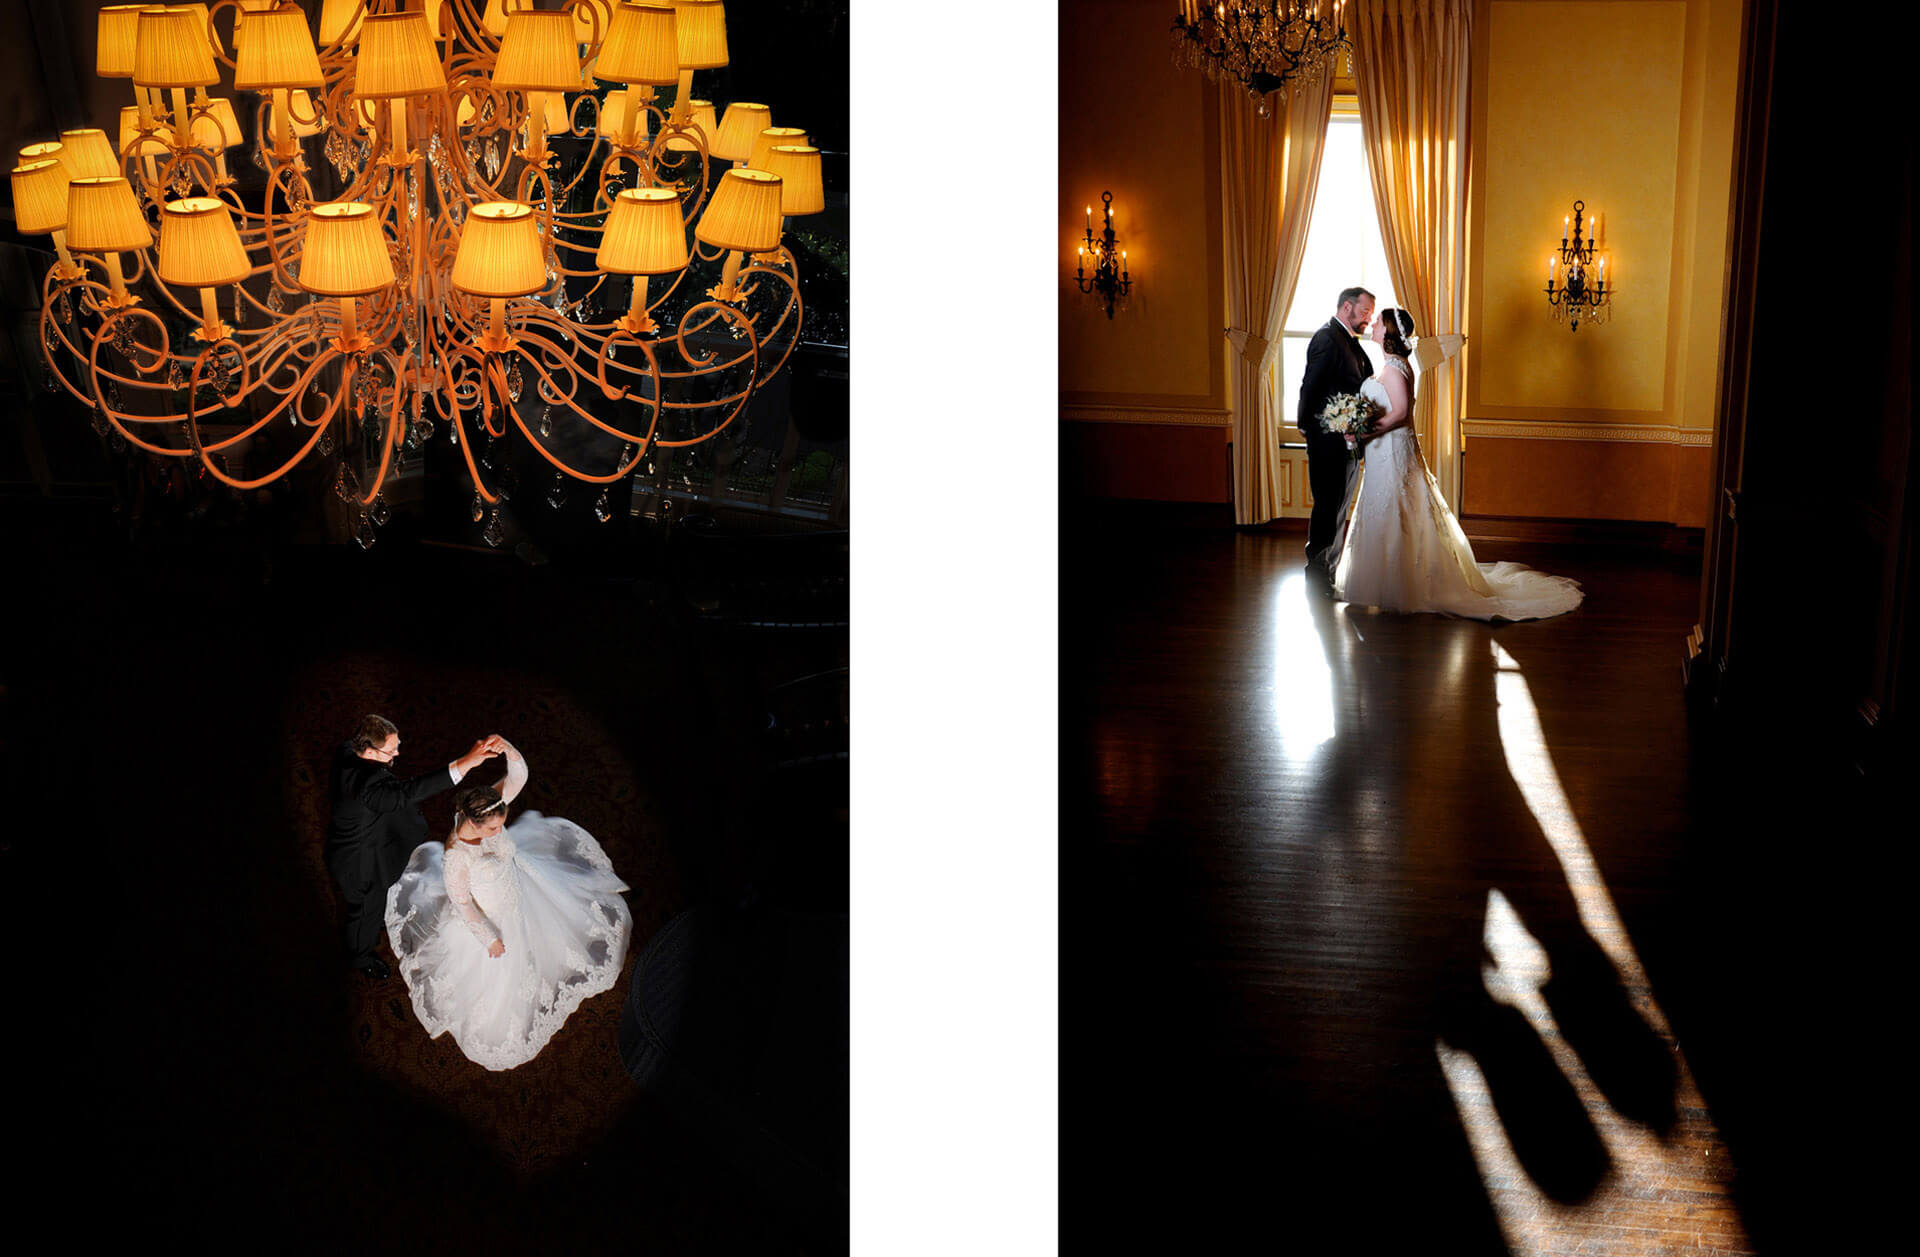 Two photos featuring Michigan wedding couples showcasing fine art and creativity for their wedding photos taken by a wedding photojournalist vote best Michigan wedding photographer 10 years in a row.